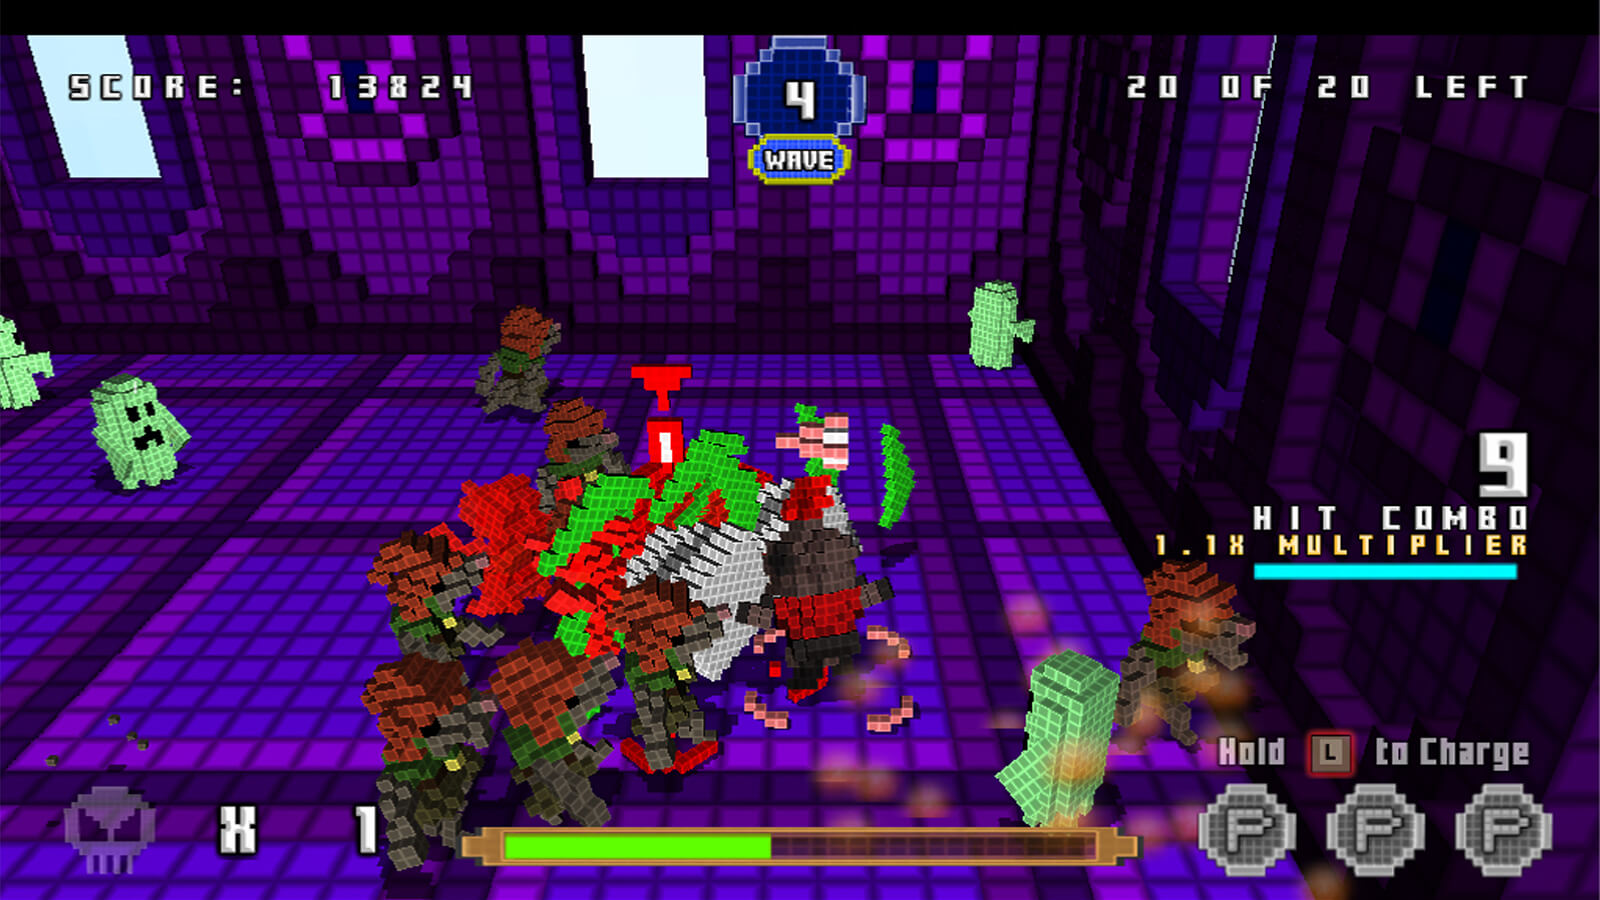 Several voxel-based enemies surround the player's character on a violet-colored map